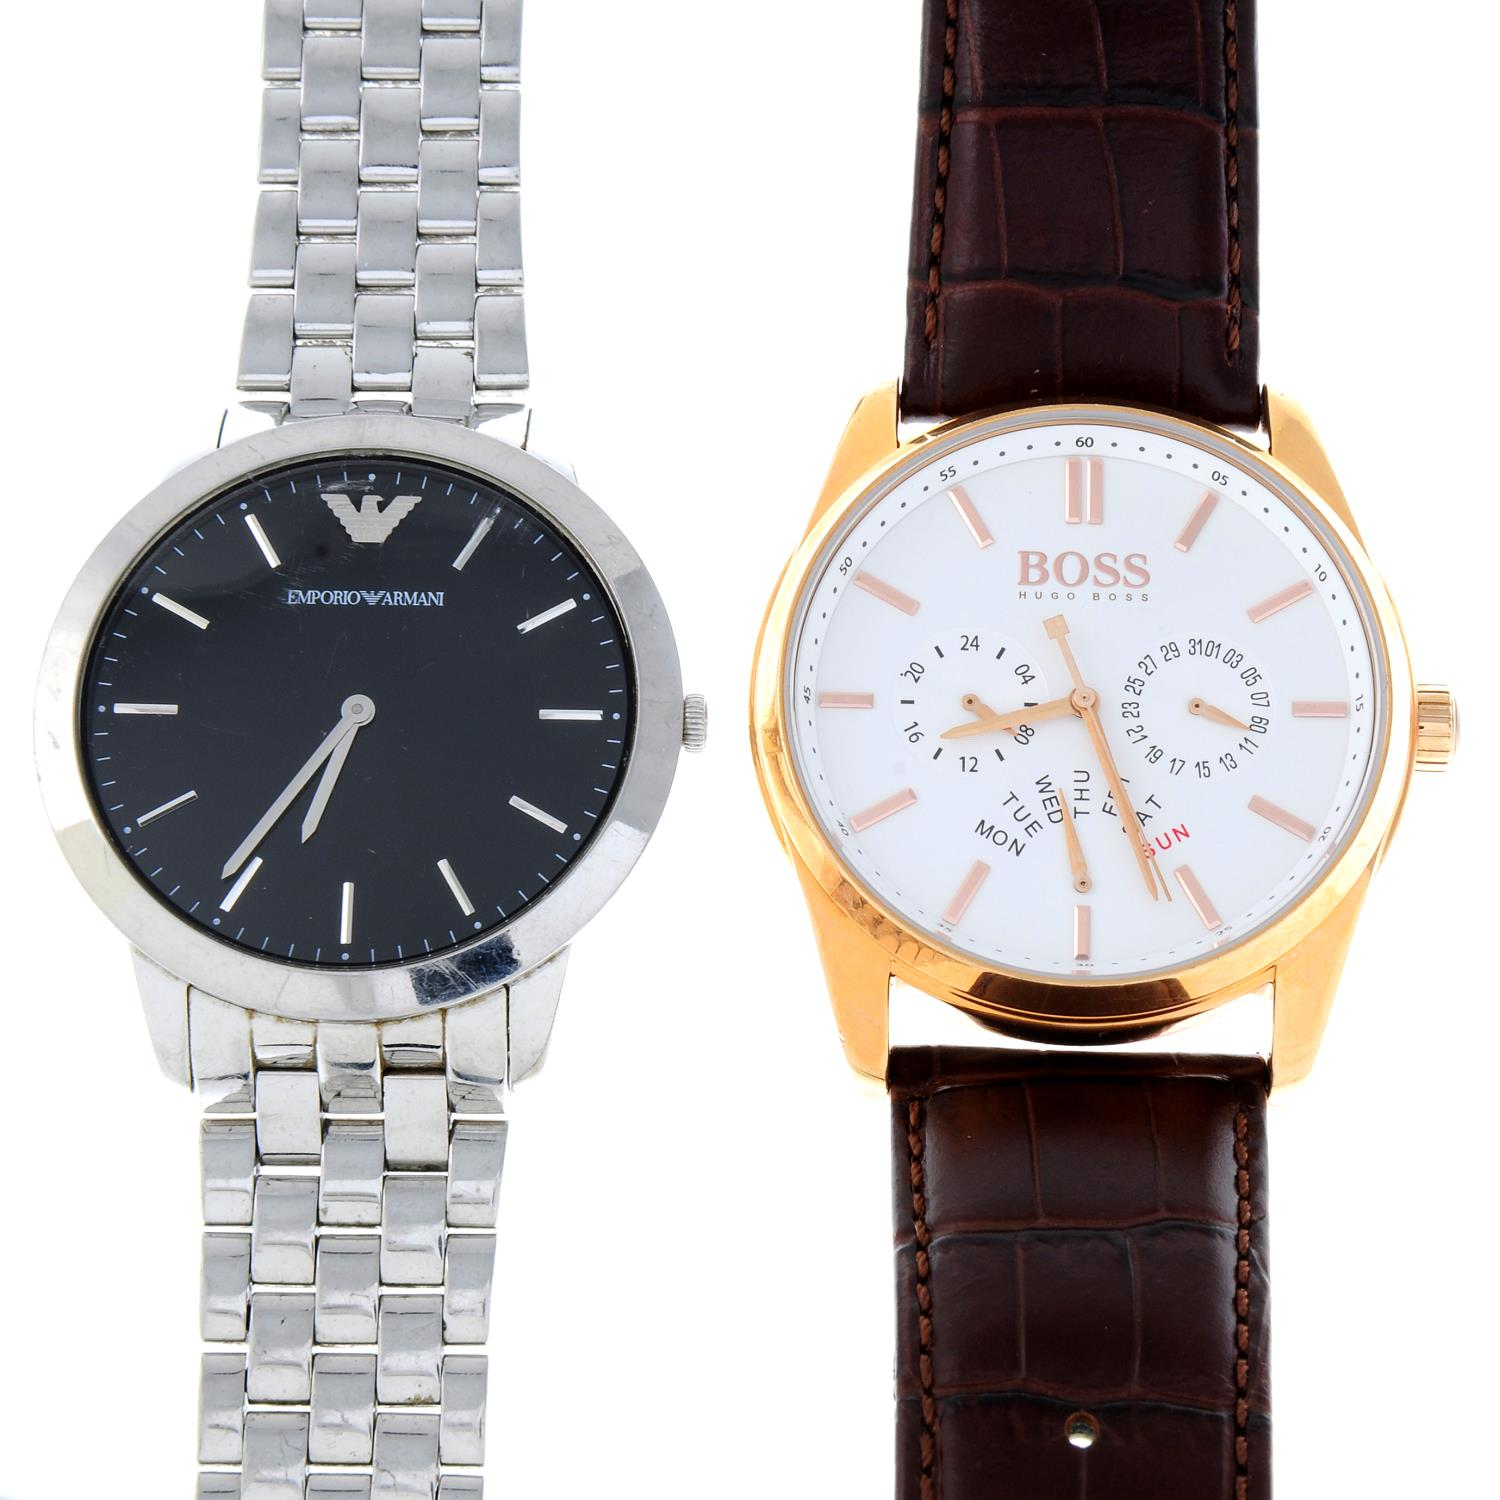 A bag of assorted watches, to include examples by Boss and Emporio Armani.